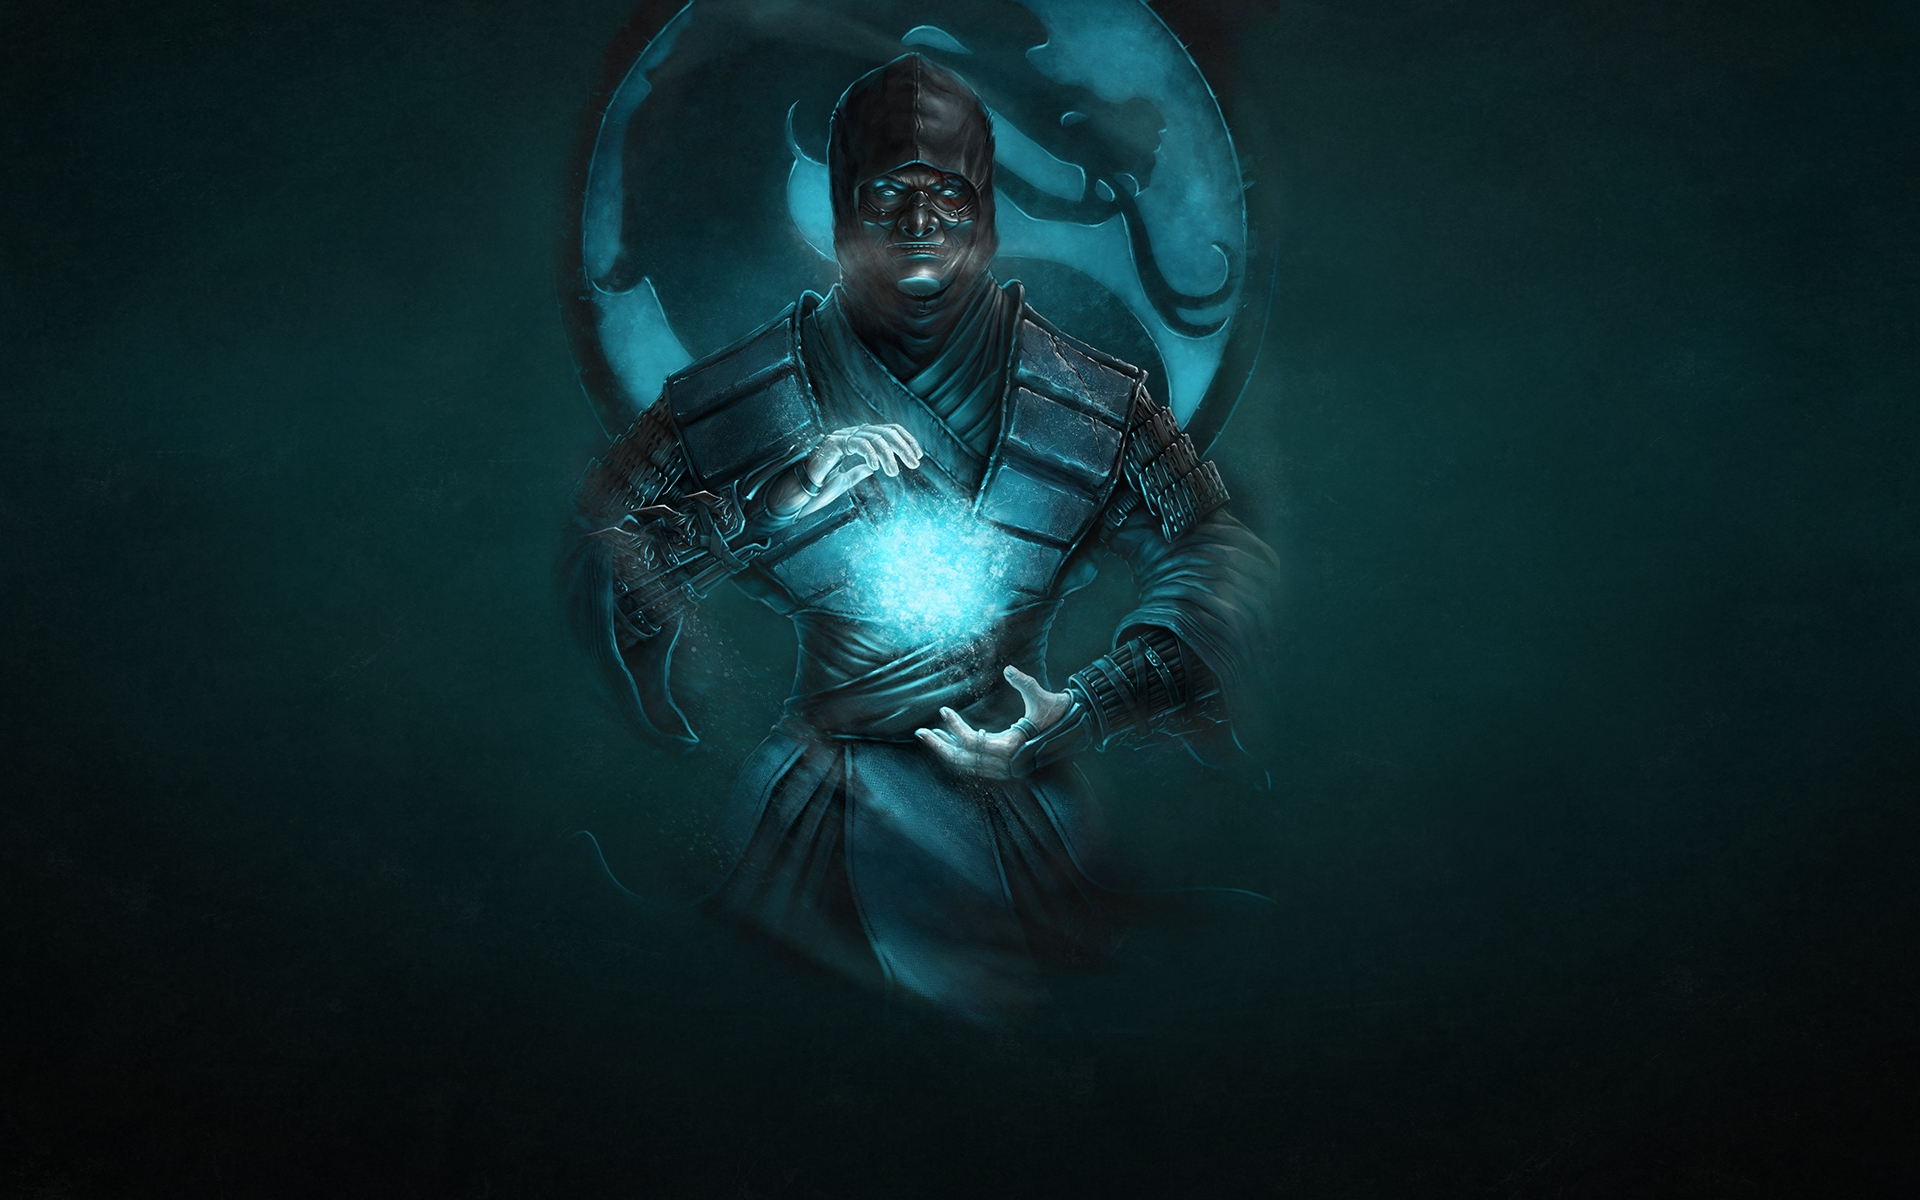 Wallpaper HD Sub Zero Mortal Kombat   HD Wallpaper Expert 1920x1200